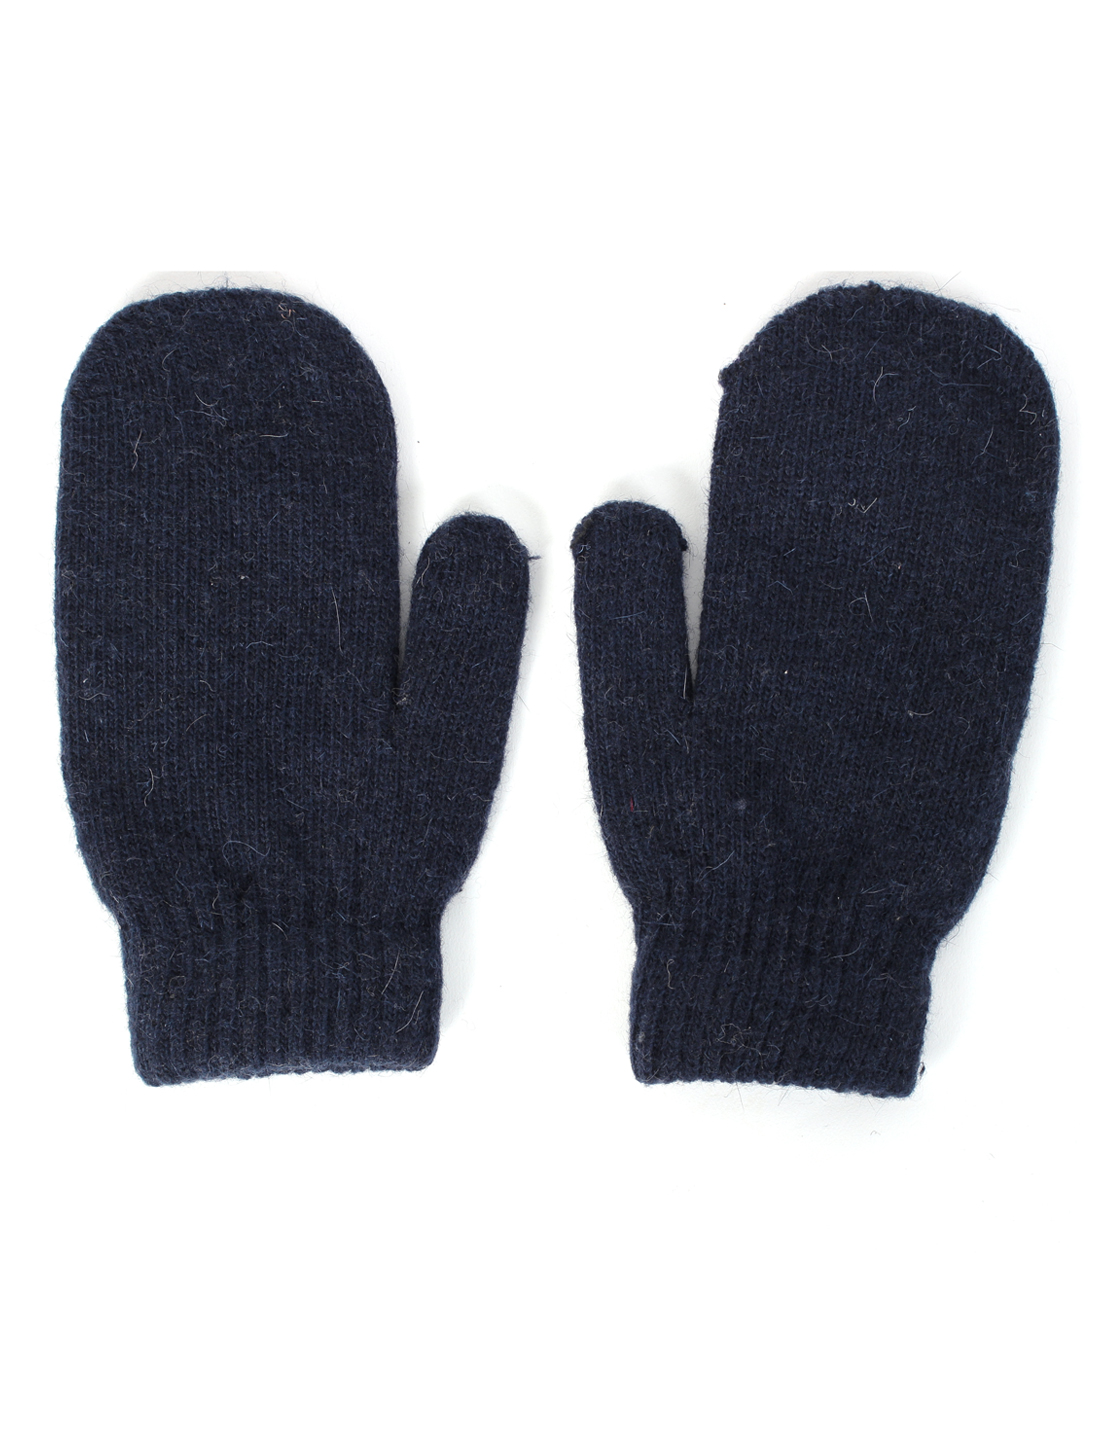 Winter Warmer stretchy Knitted Mitten Gloves Navy Blue Pair for Unisex